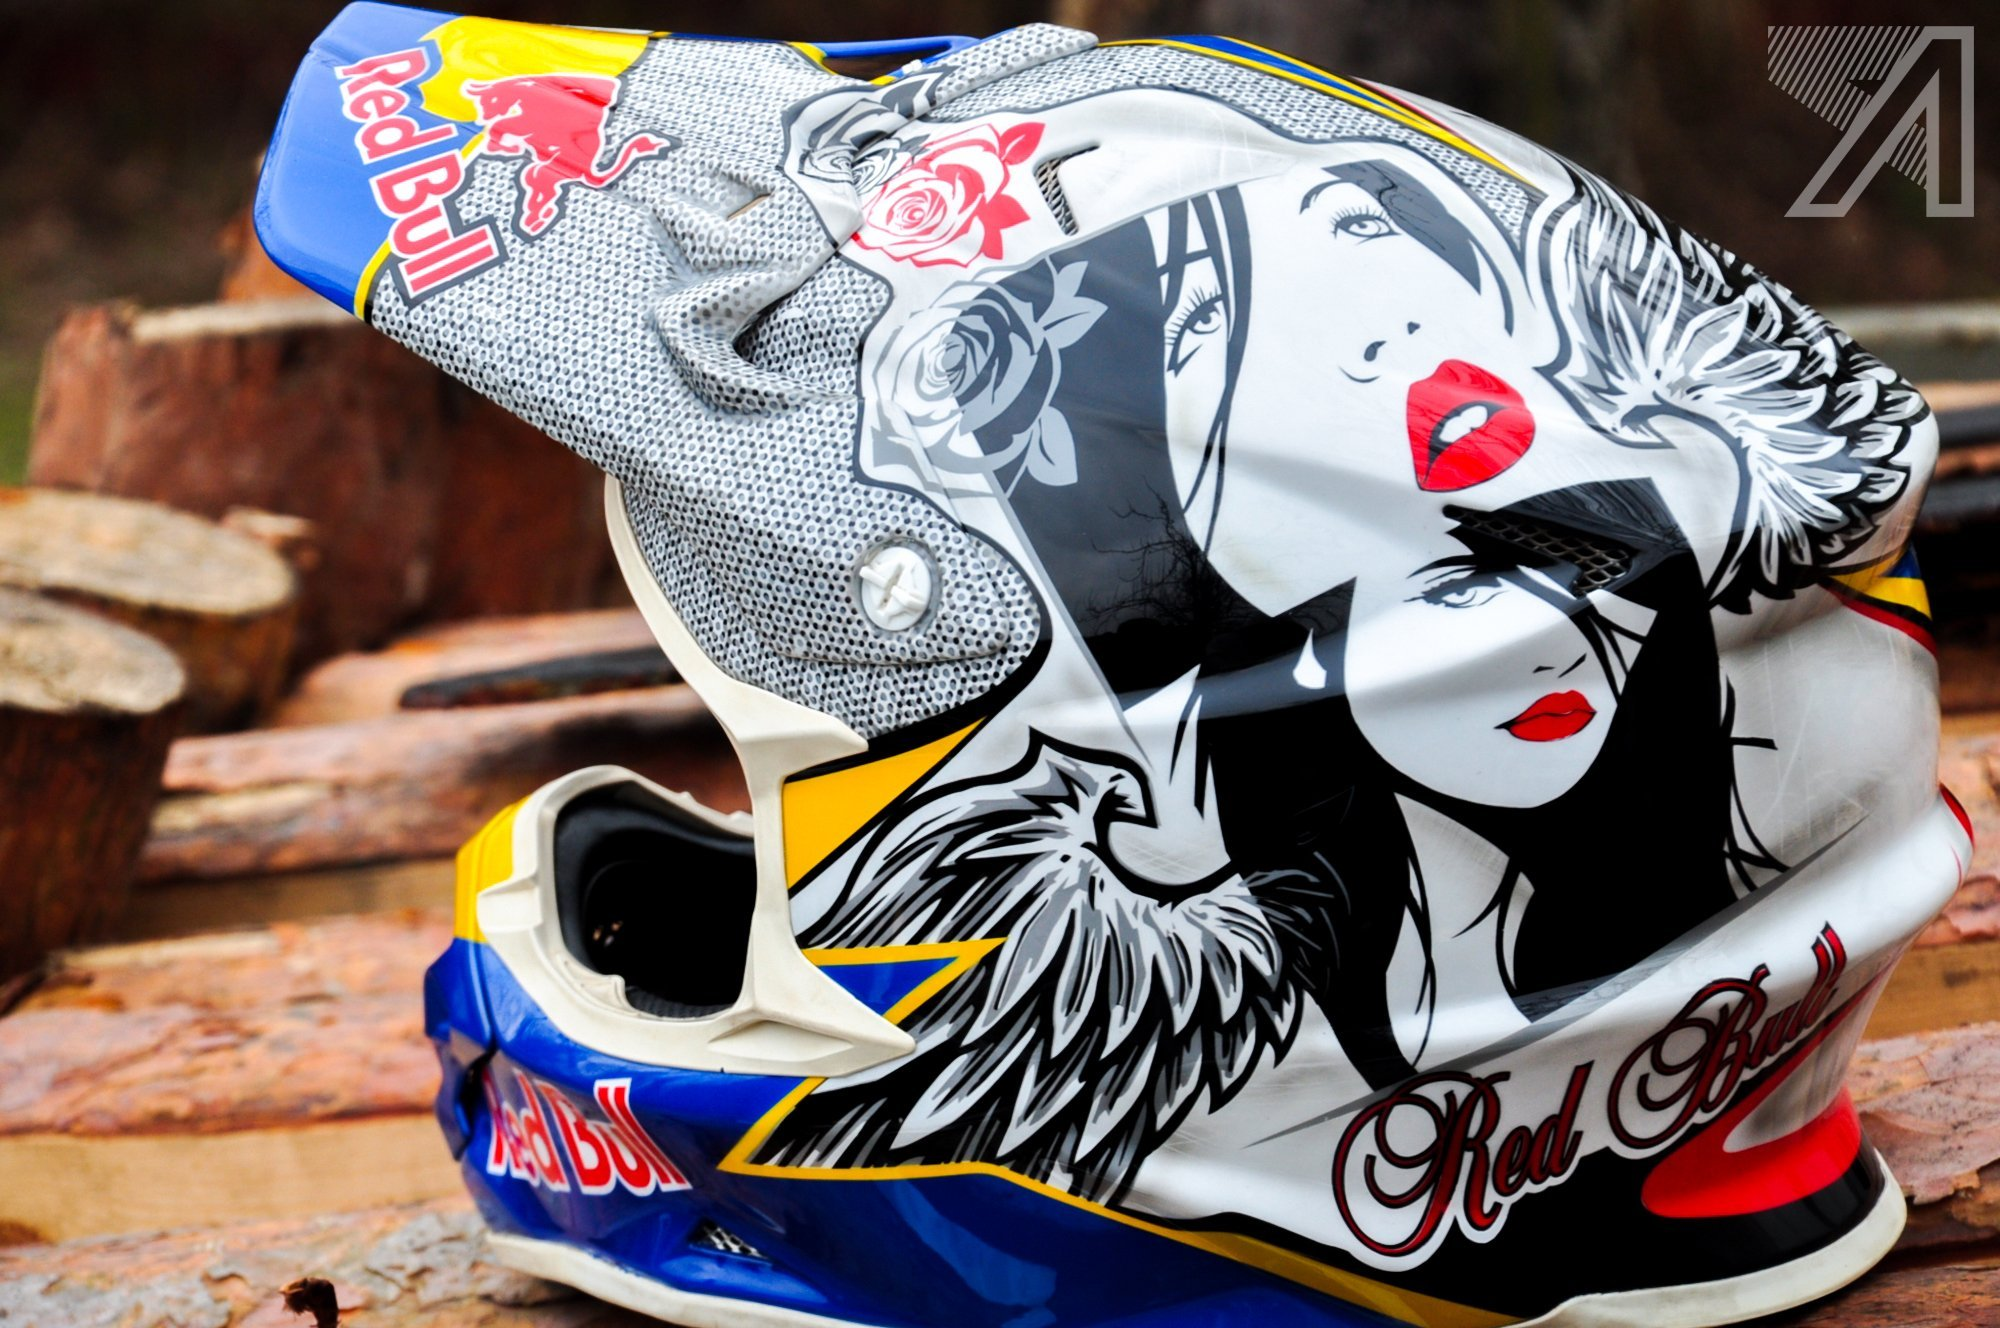 2016-10::1476139173-red-bull-enduro.jpg